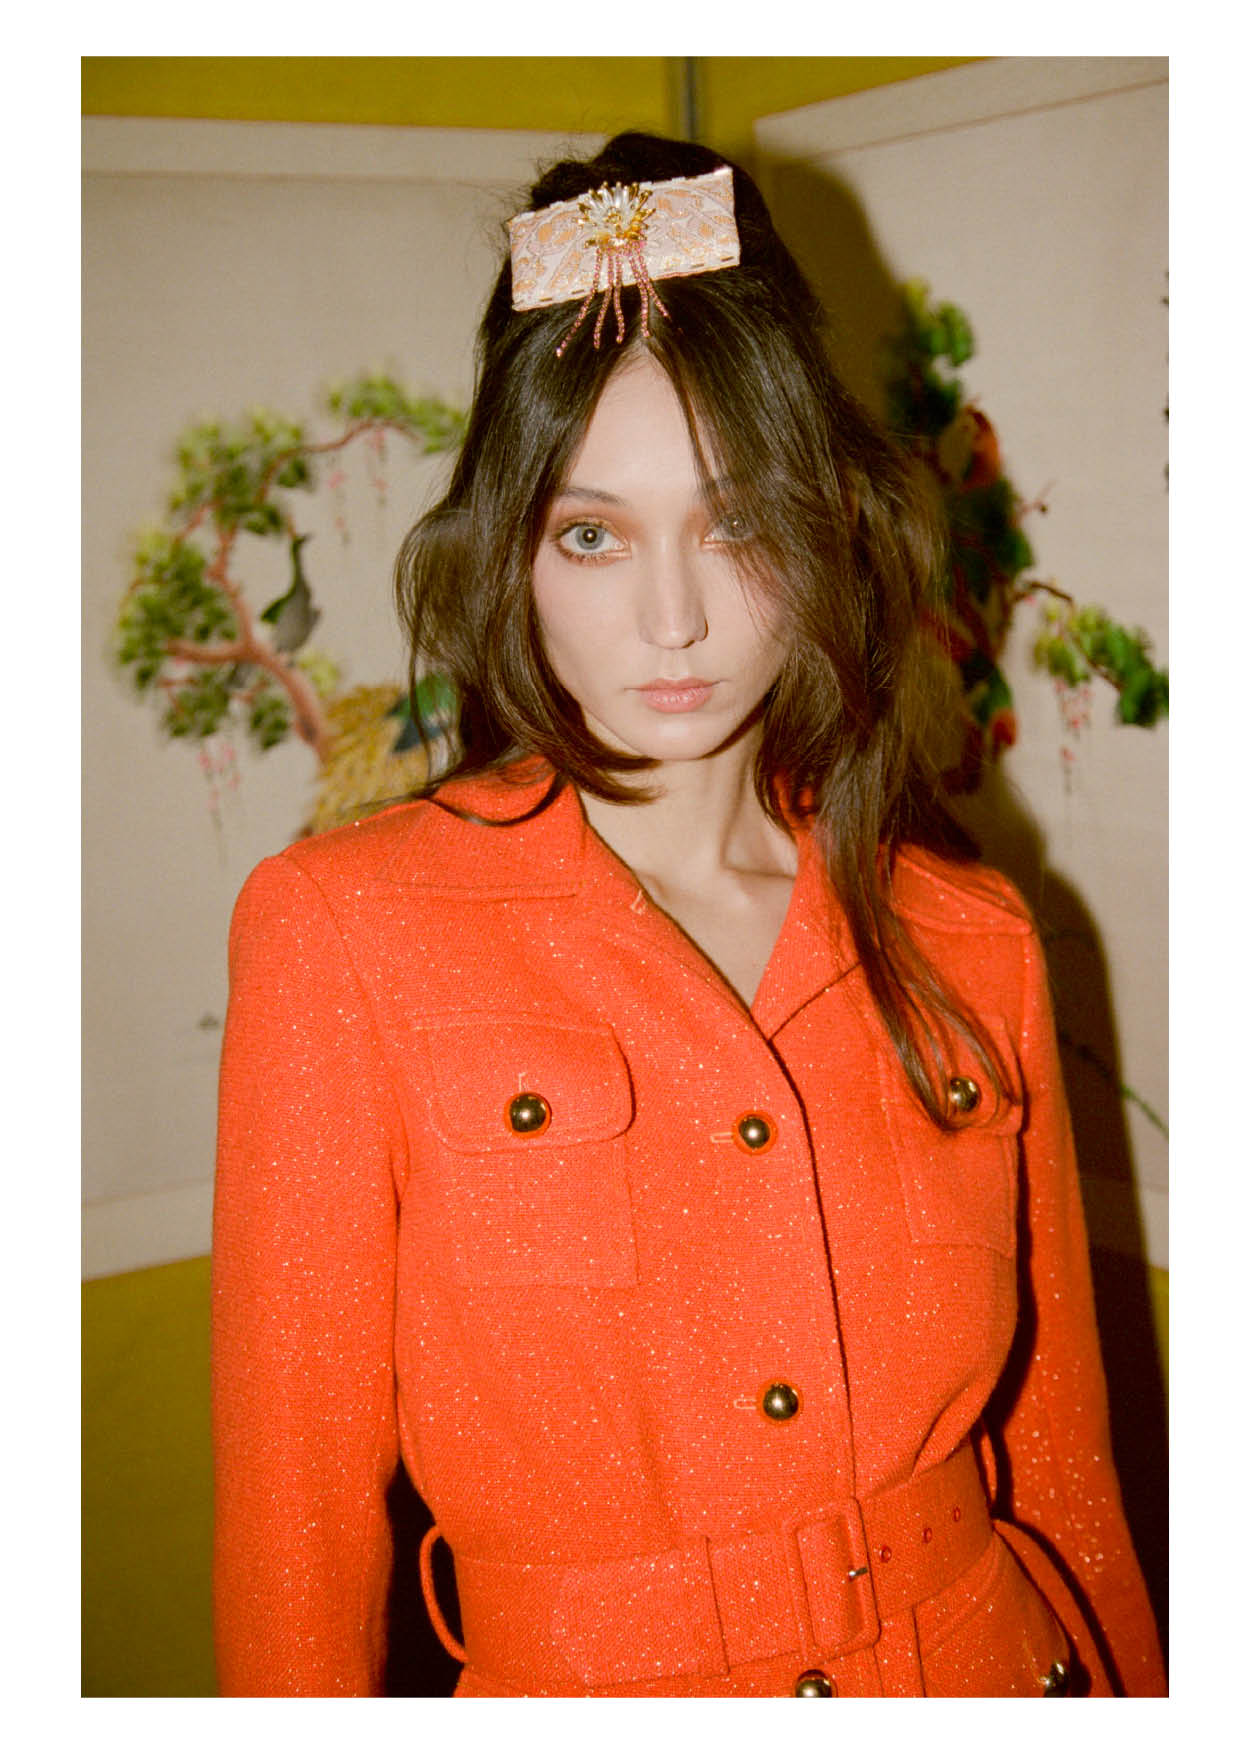 Shimmer Orange wool suit